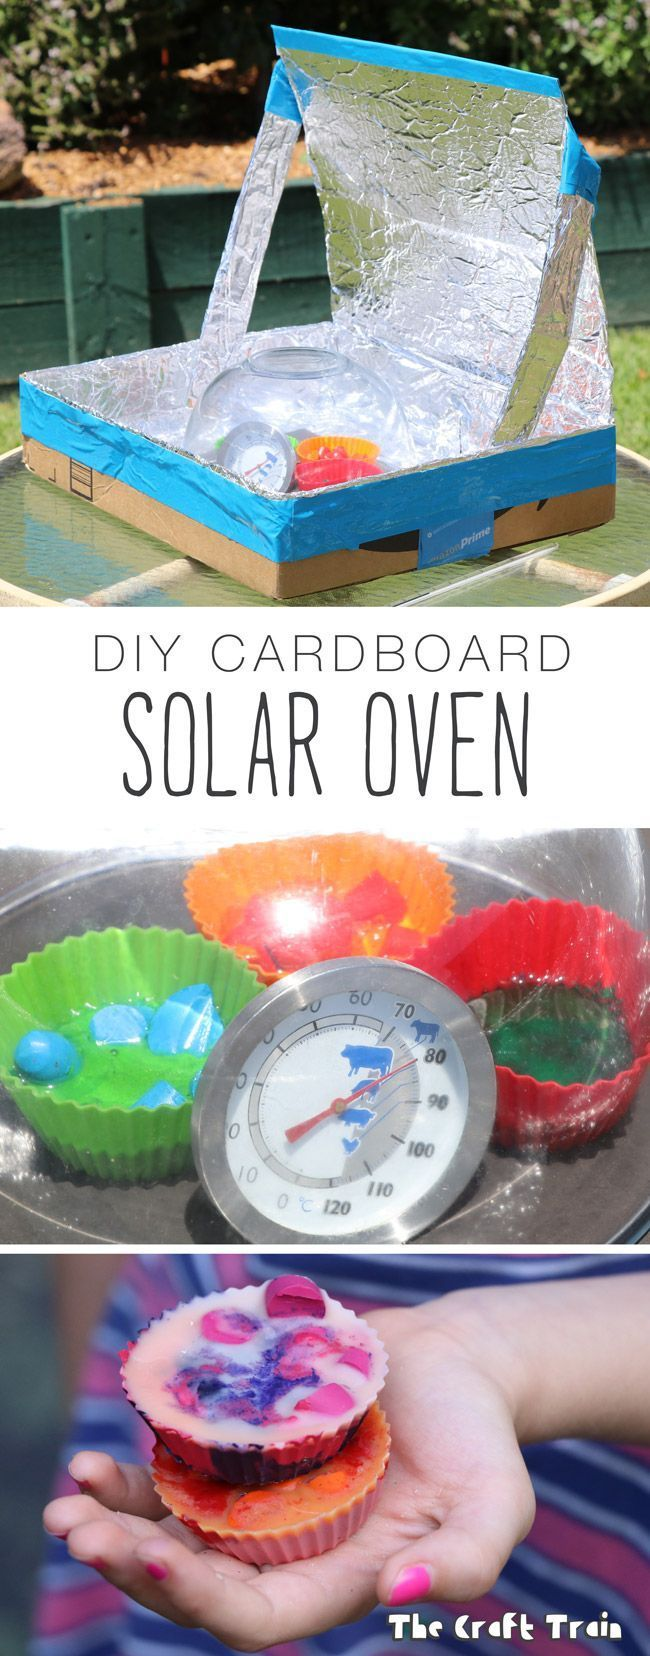 Spring's starting to show its face and it's time to start cooking alfresco! Make this DIY Solar Oven from a repurposed cardboard box